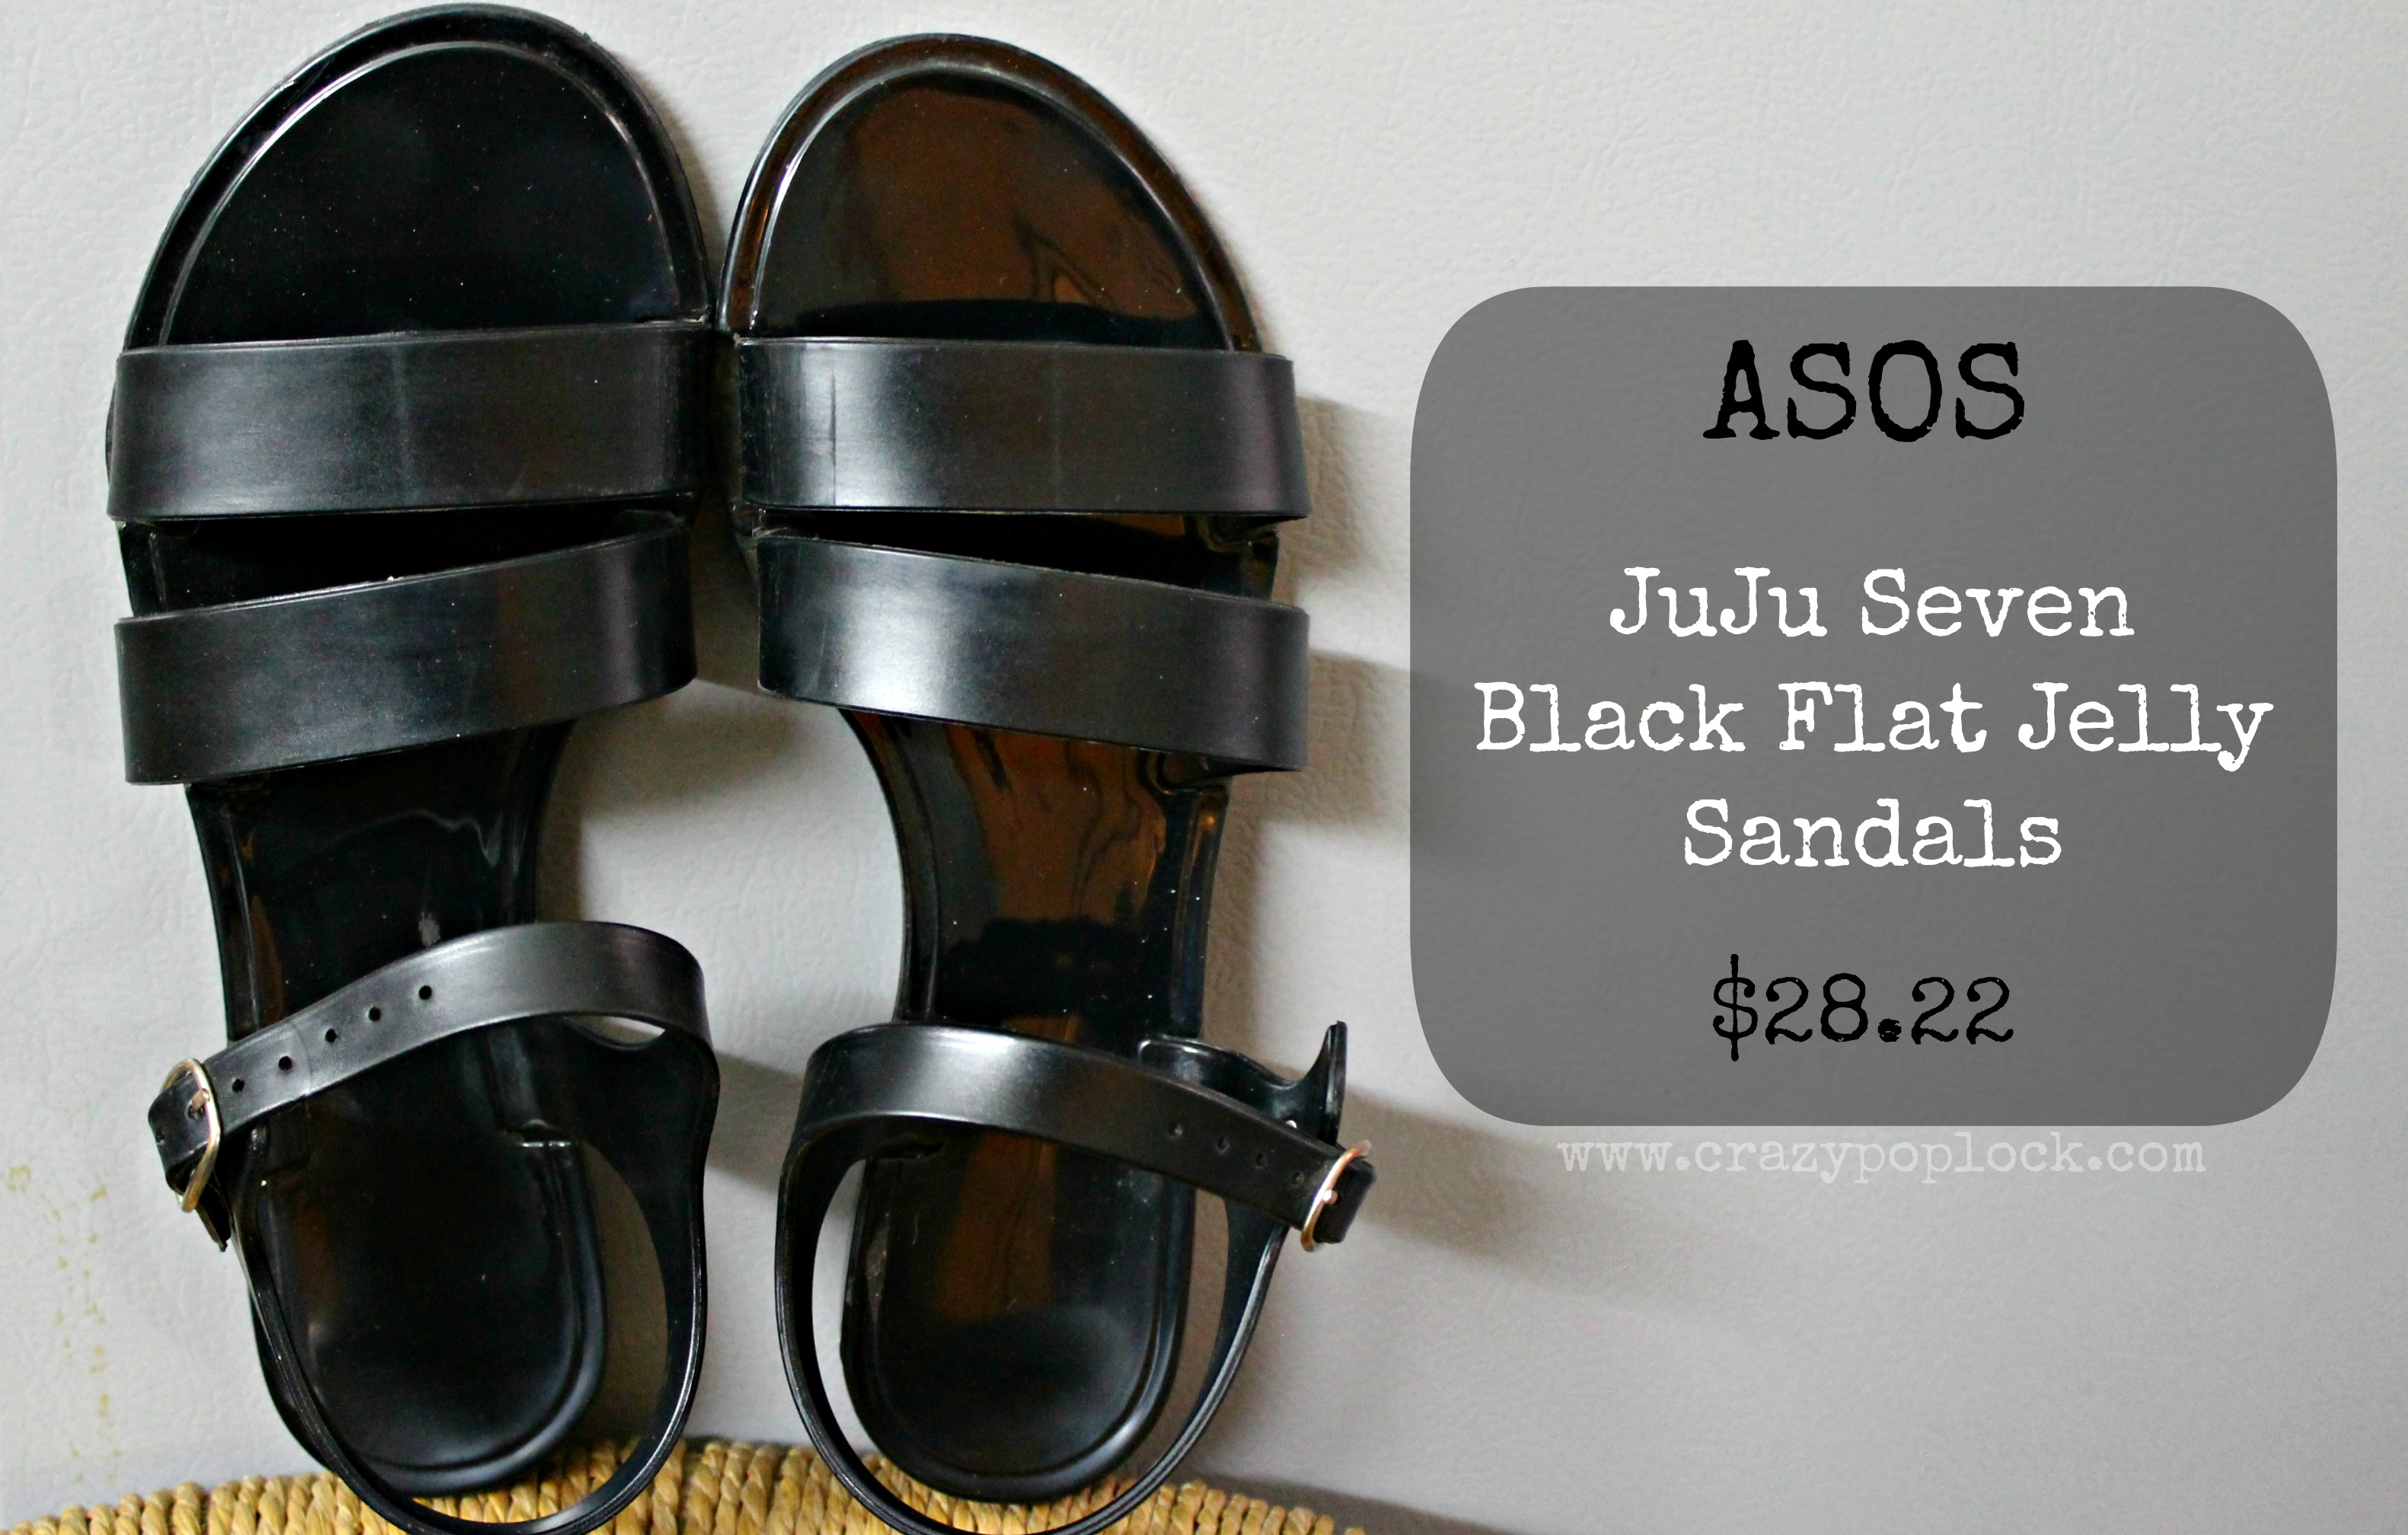 Black juju sandals - During The Whole Month Of 2013 November December I Was Basically Shopping A Lot Of Stuff From Some International Shopping Websites Since Black